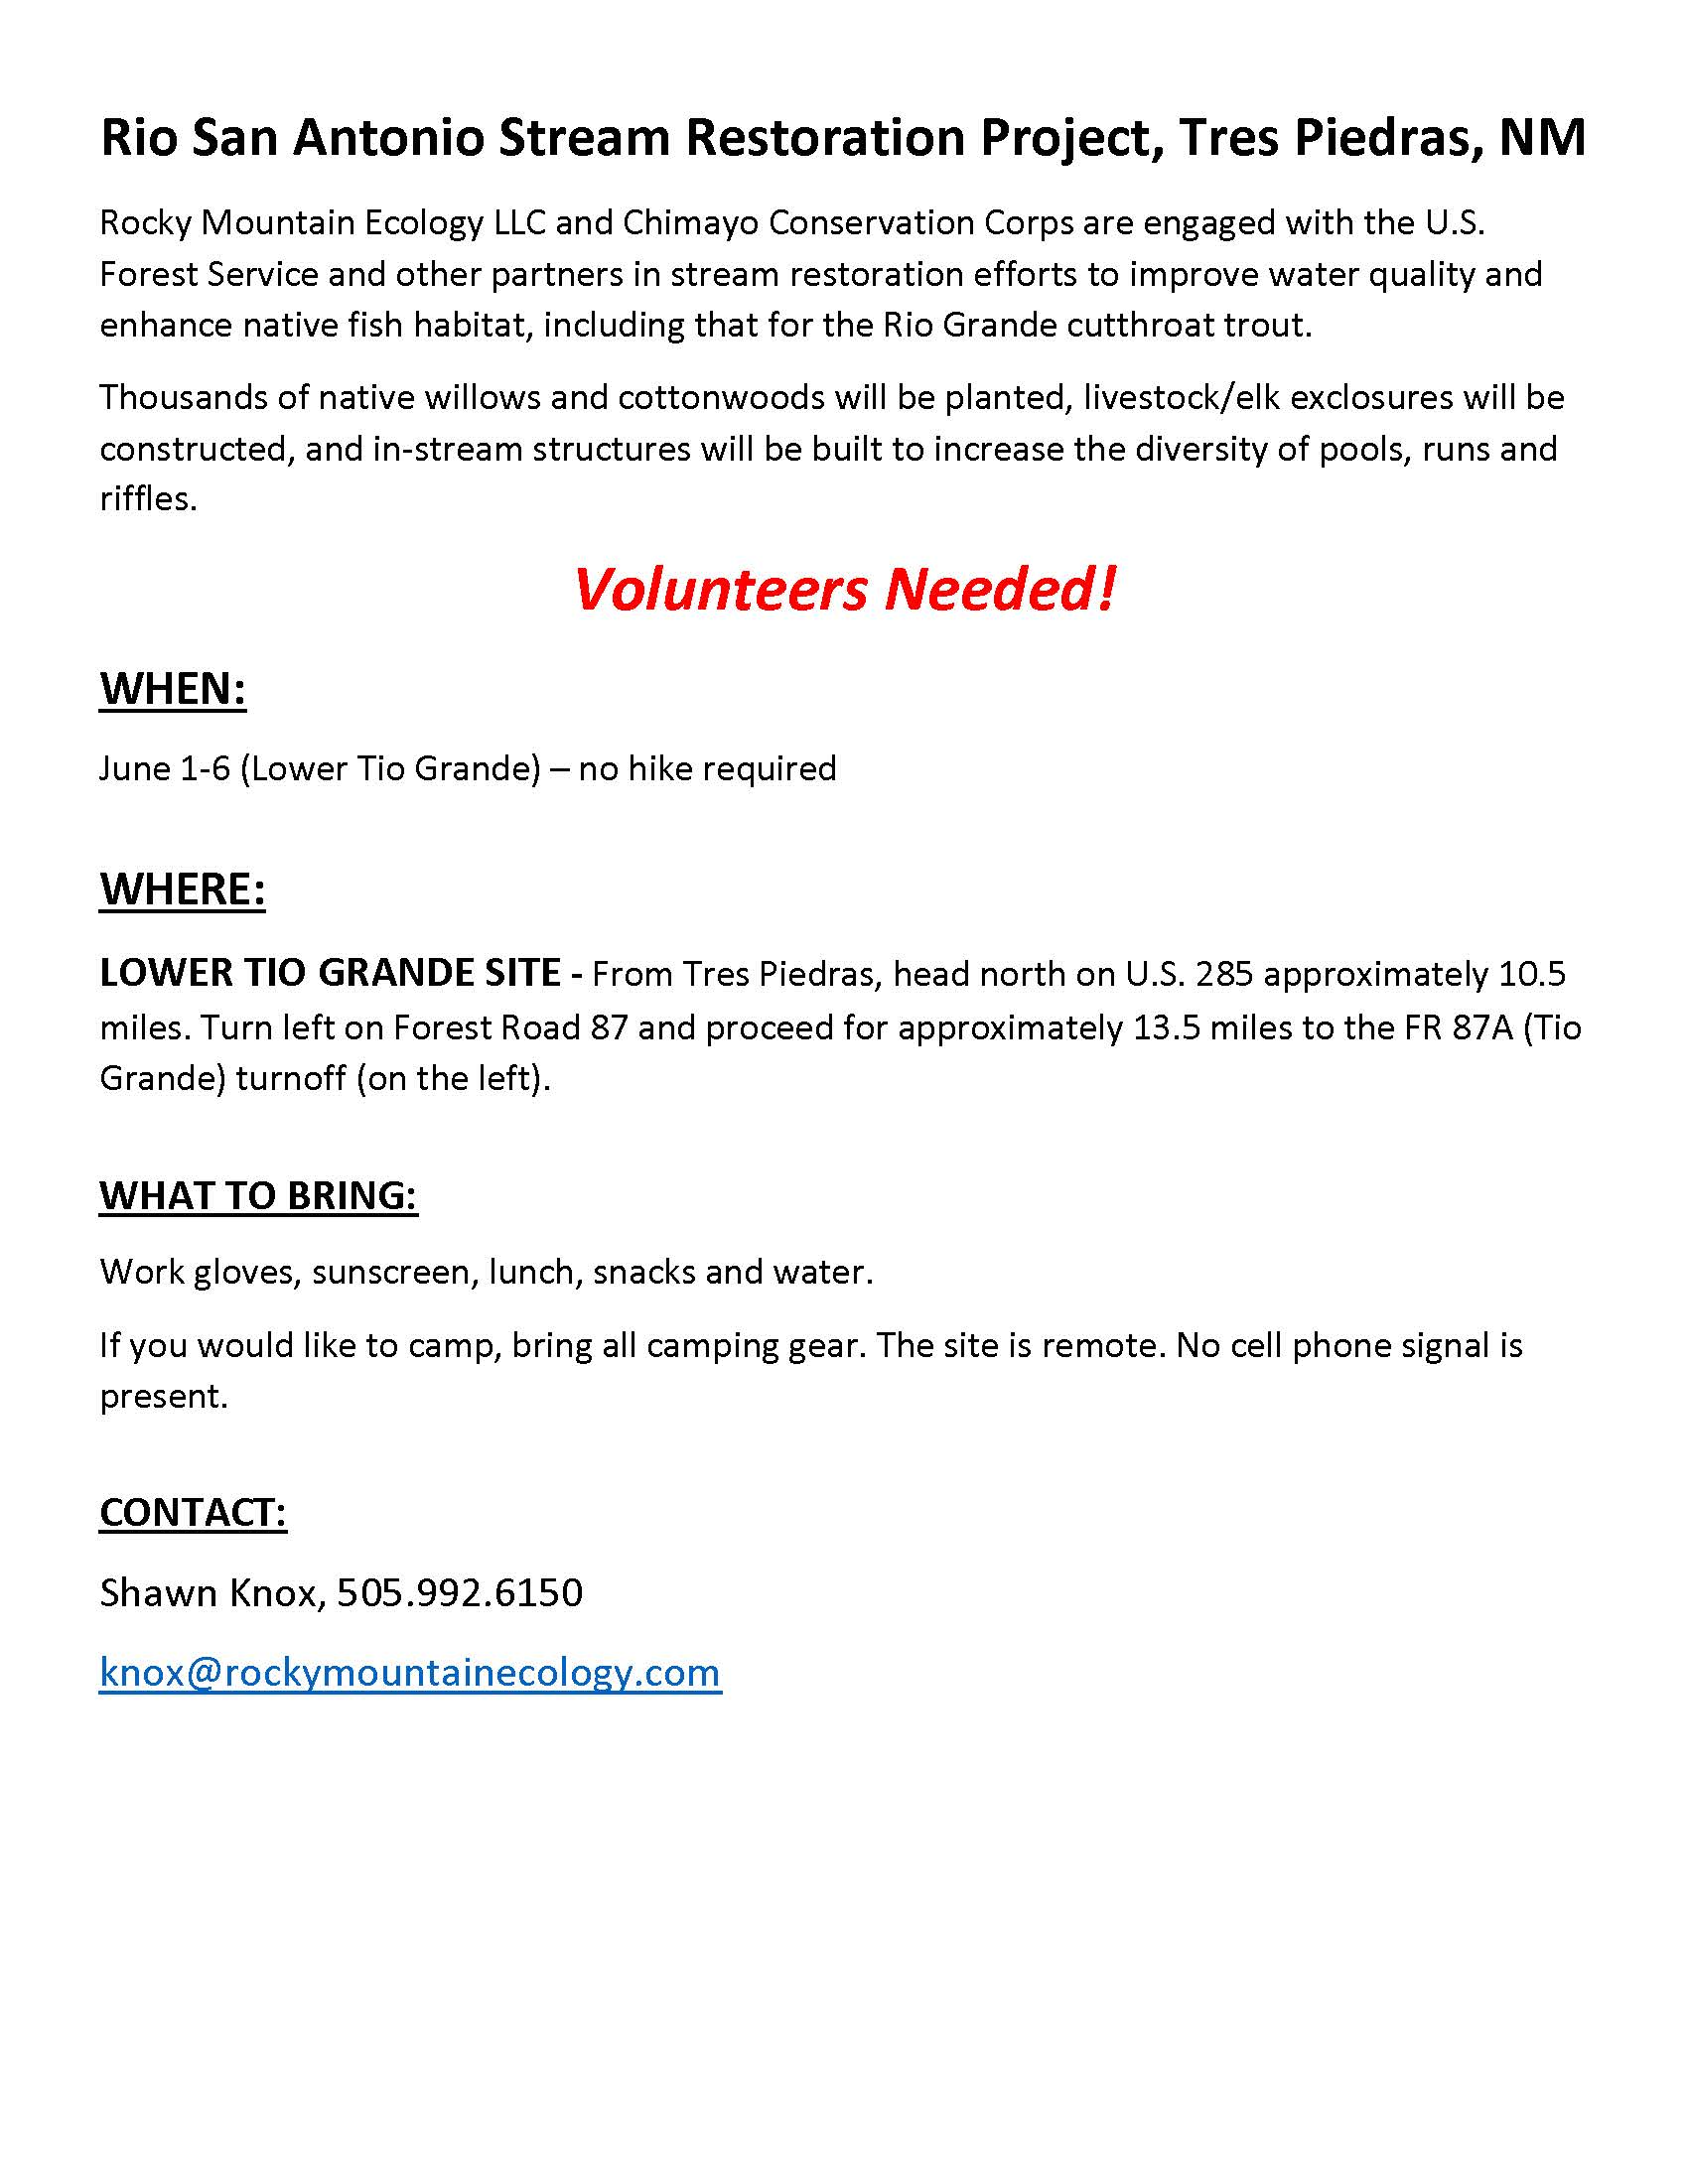 Rio San Antonio River Restoration -VOLUNTEERS NEEDED____JUNE 1-6_Page_1.jpg